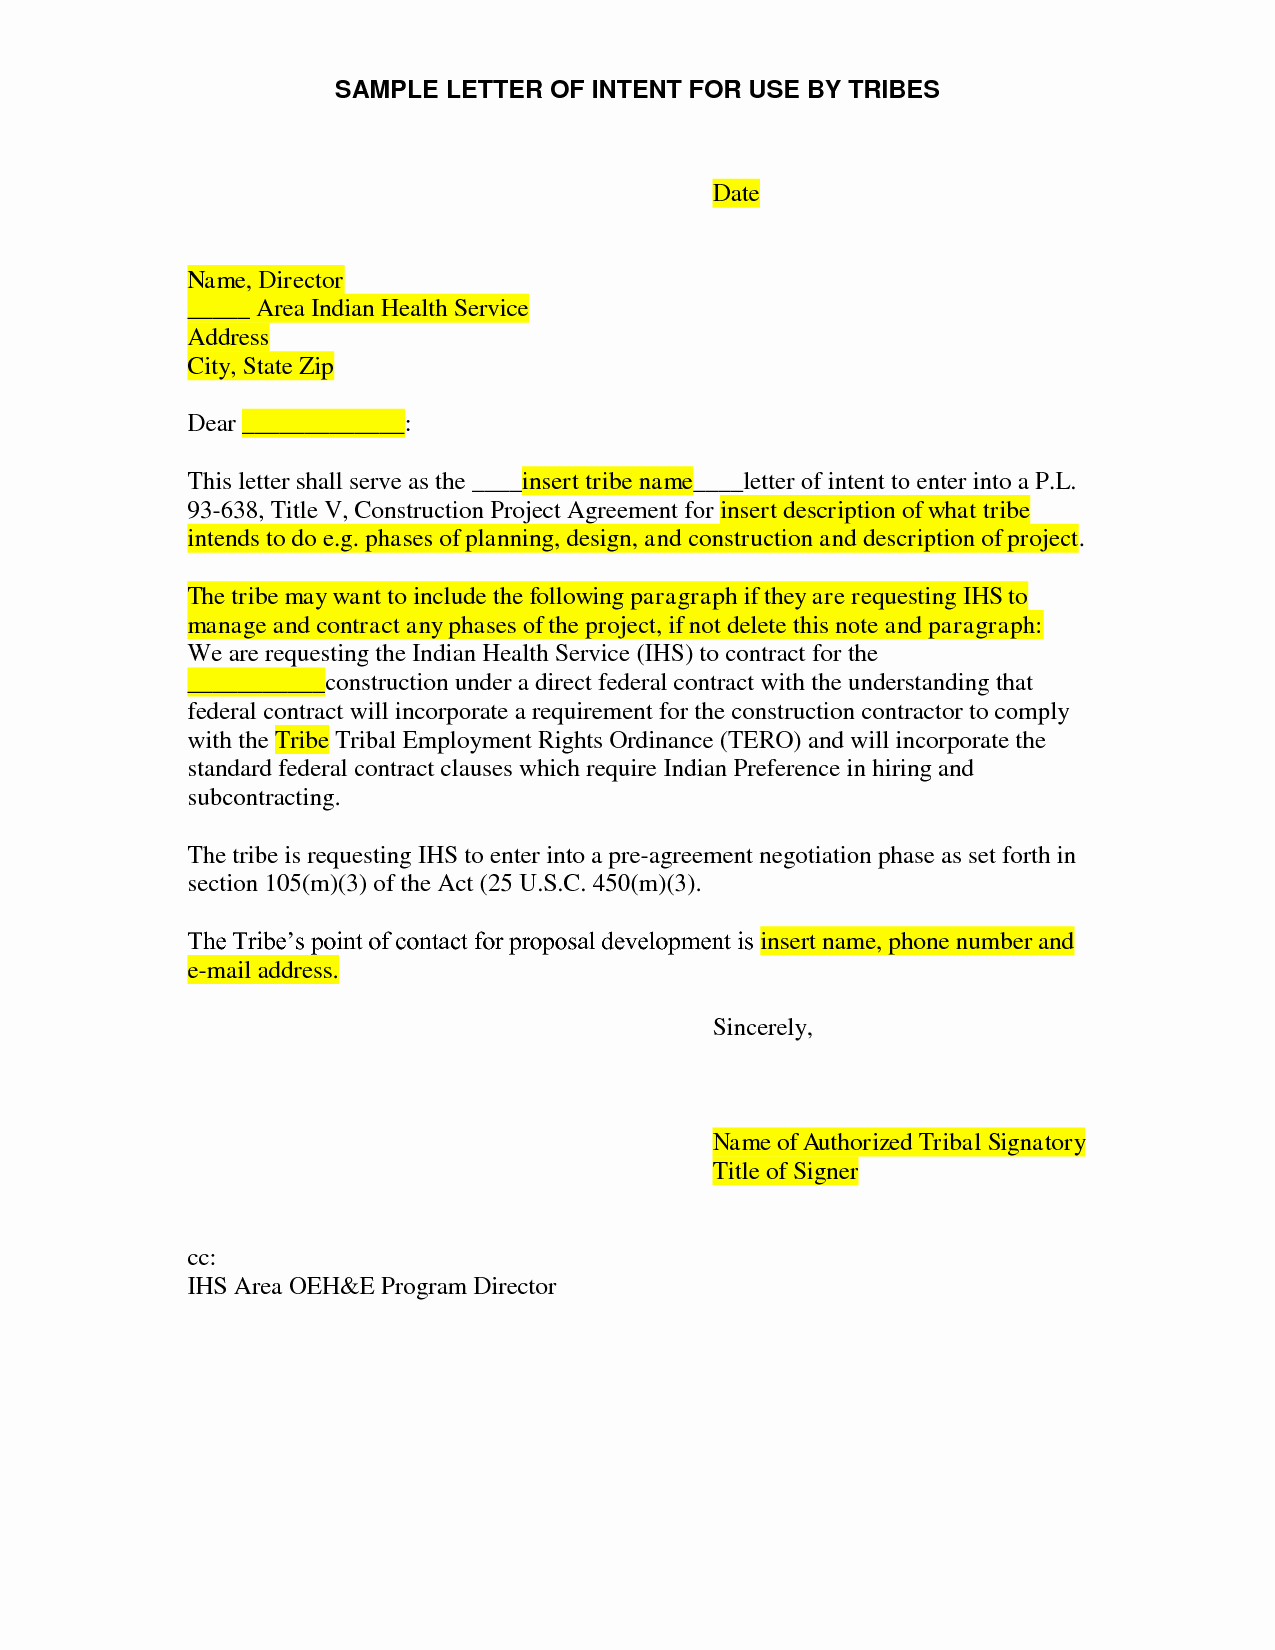 Letter Of Intent Construction New Best S Of Letter Intent Construction Construction Letter Of Intent Examples Sample